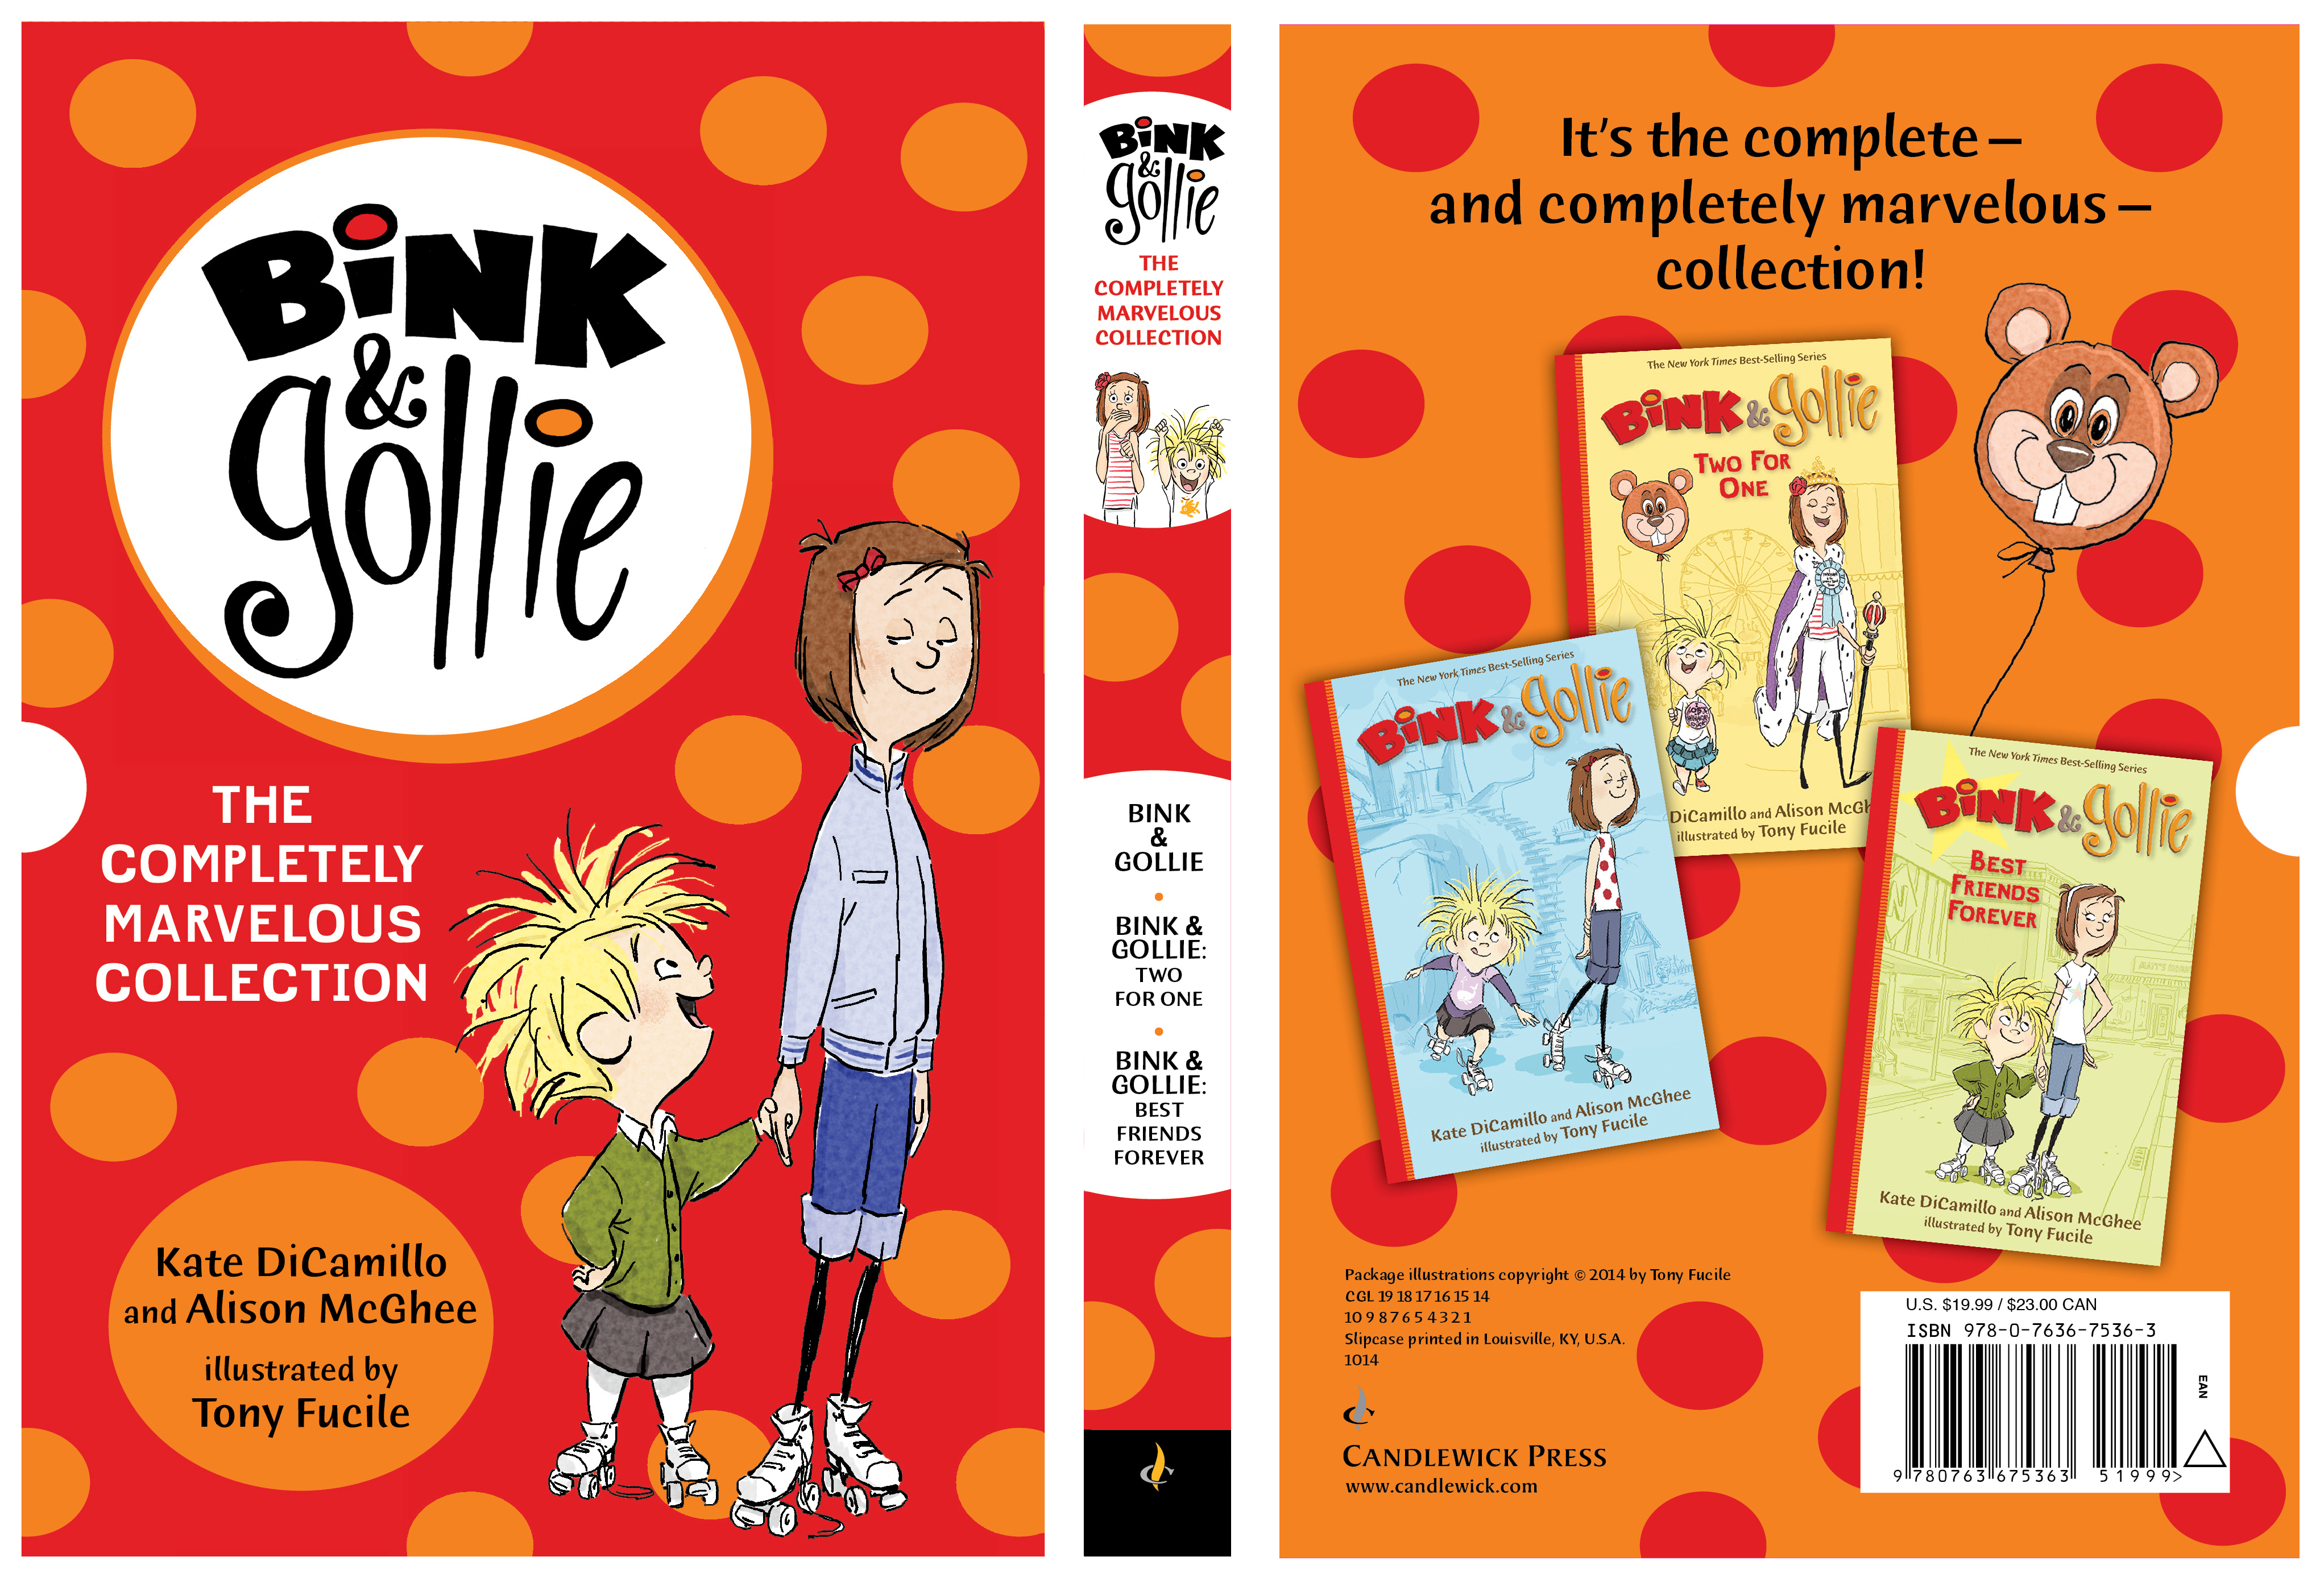 Slipcase for BINK & GOLLIE: THE COMPLETELY MARVELOUS COLLECTION